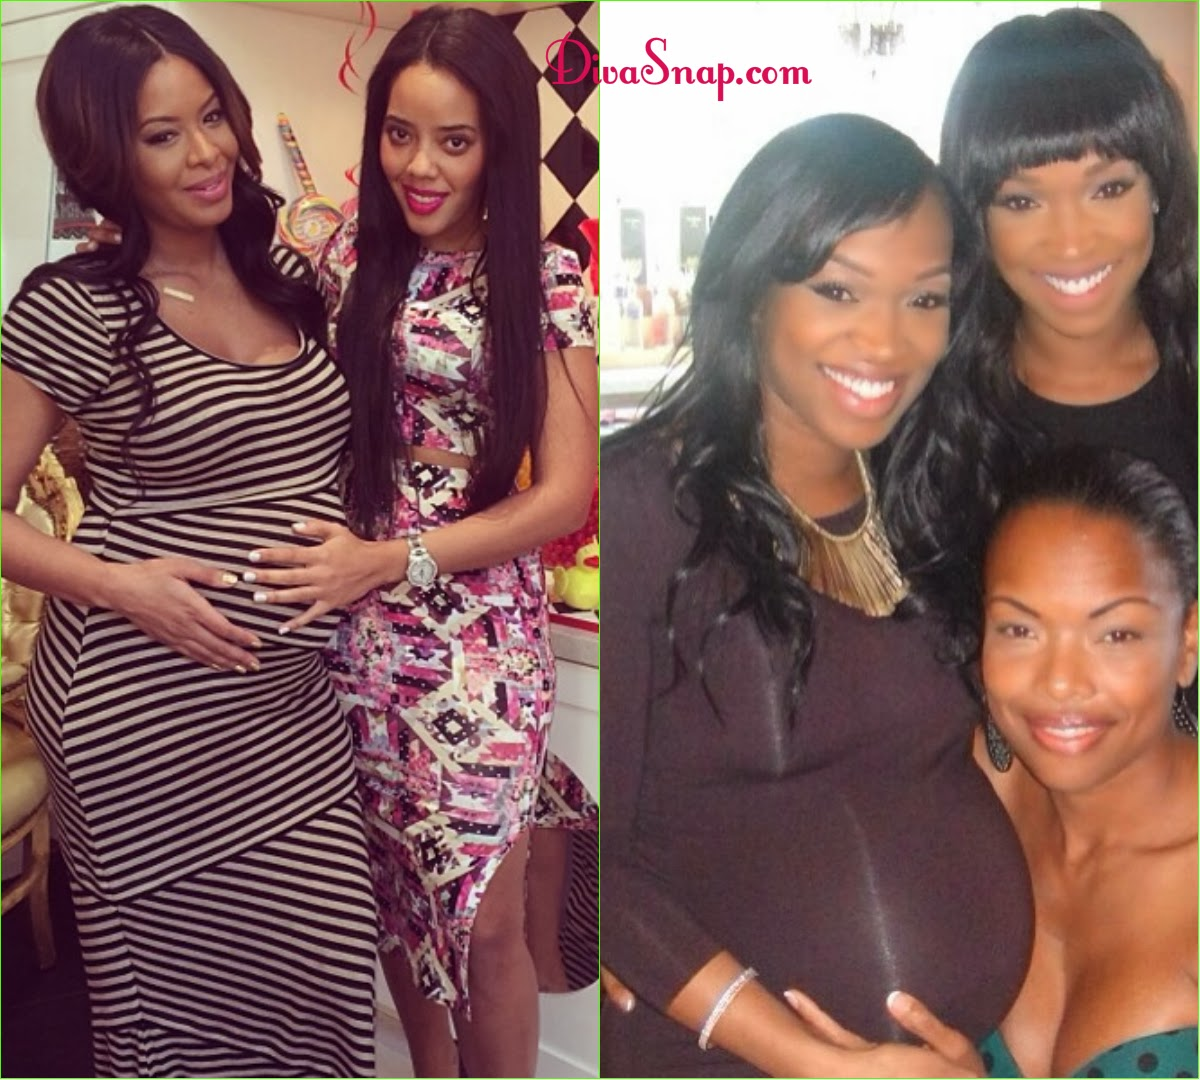 VANESSA SIMMONS & KHADIJAH MCCRAY CELEB STYLED BABY SHOWERS - DivaSnap.com